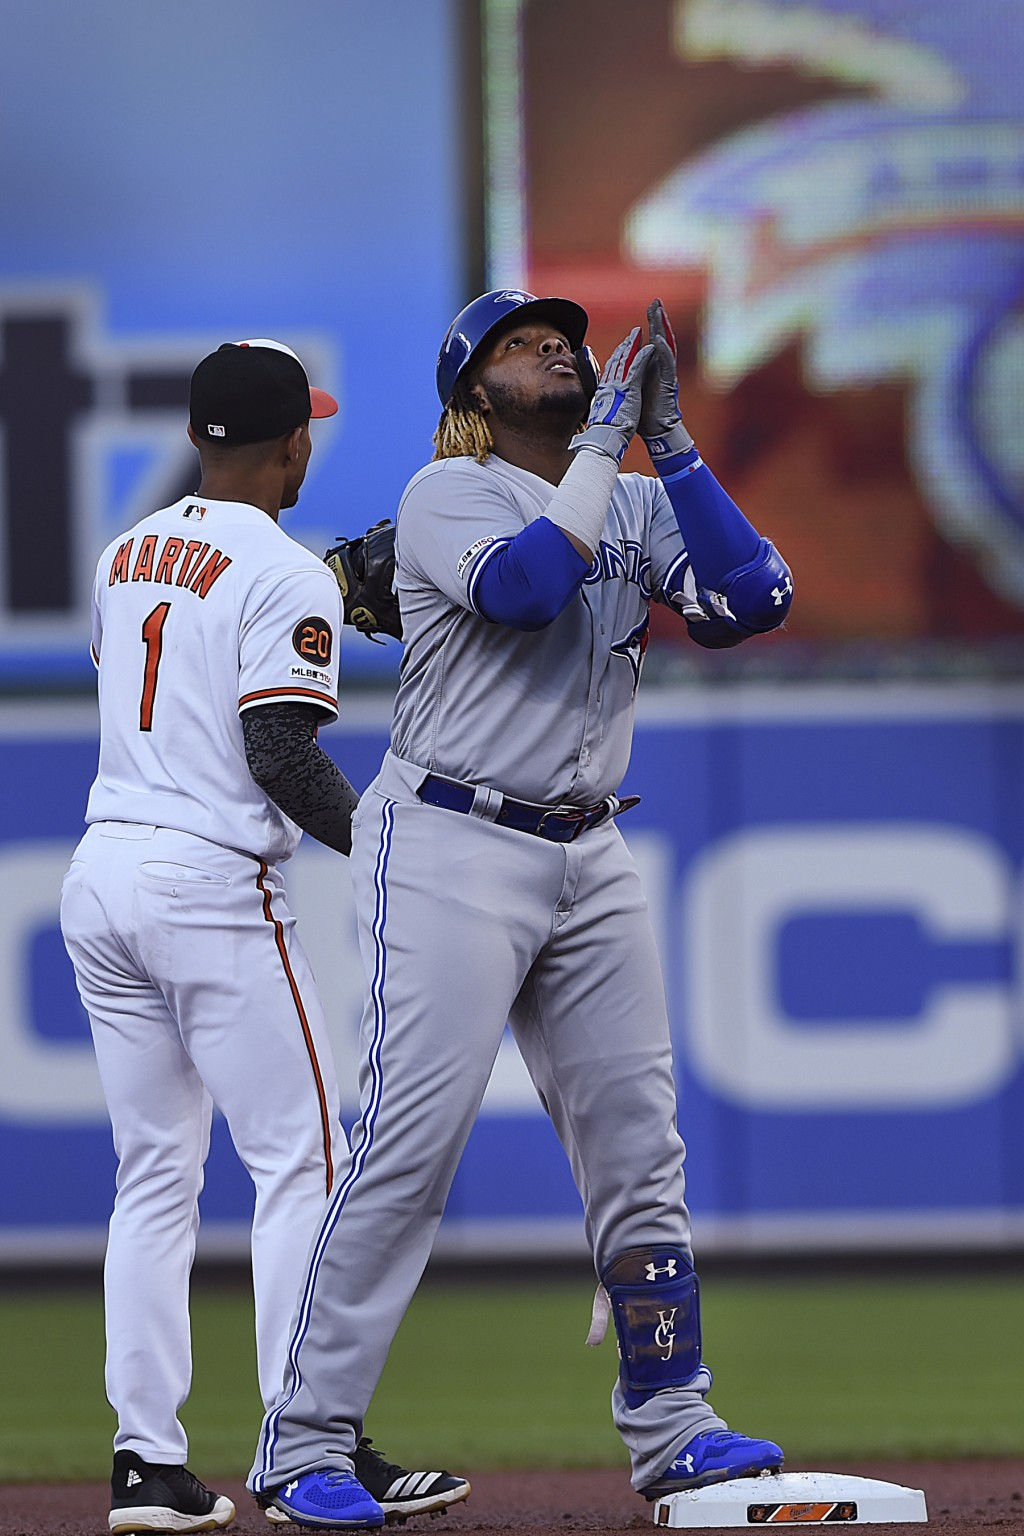 Toronto Blue Jays' Vladimir Guerrero reacts after hitting a double against the Baltimore Orioles during the first inning of a baseball game Thursday,